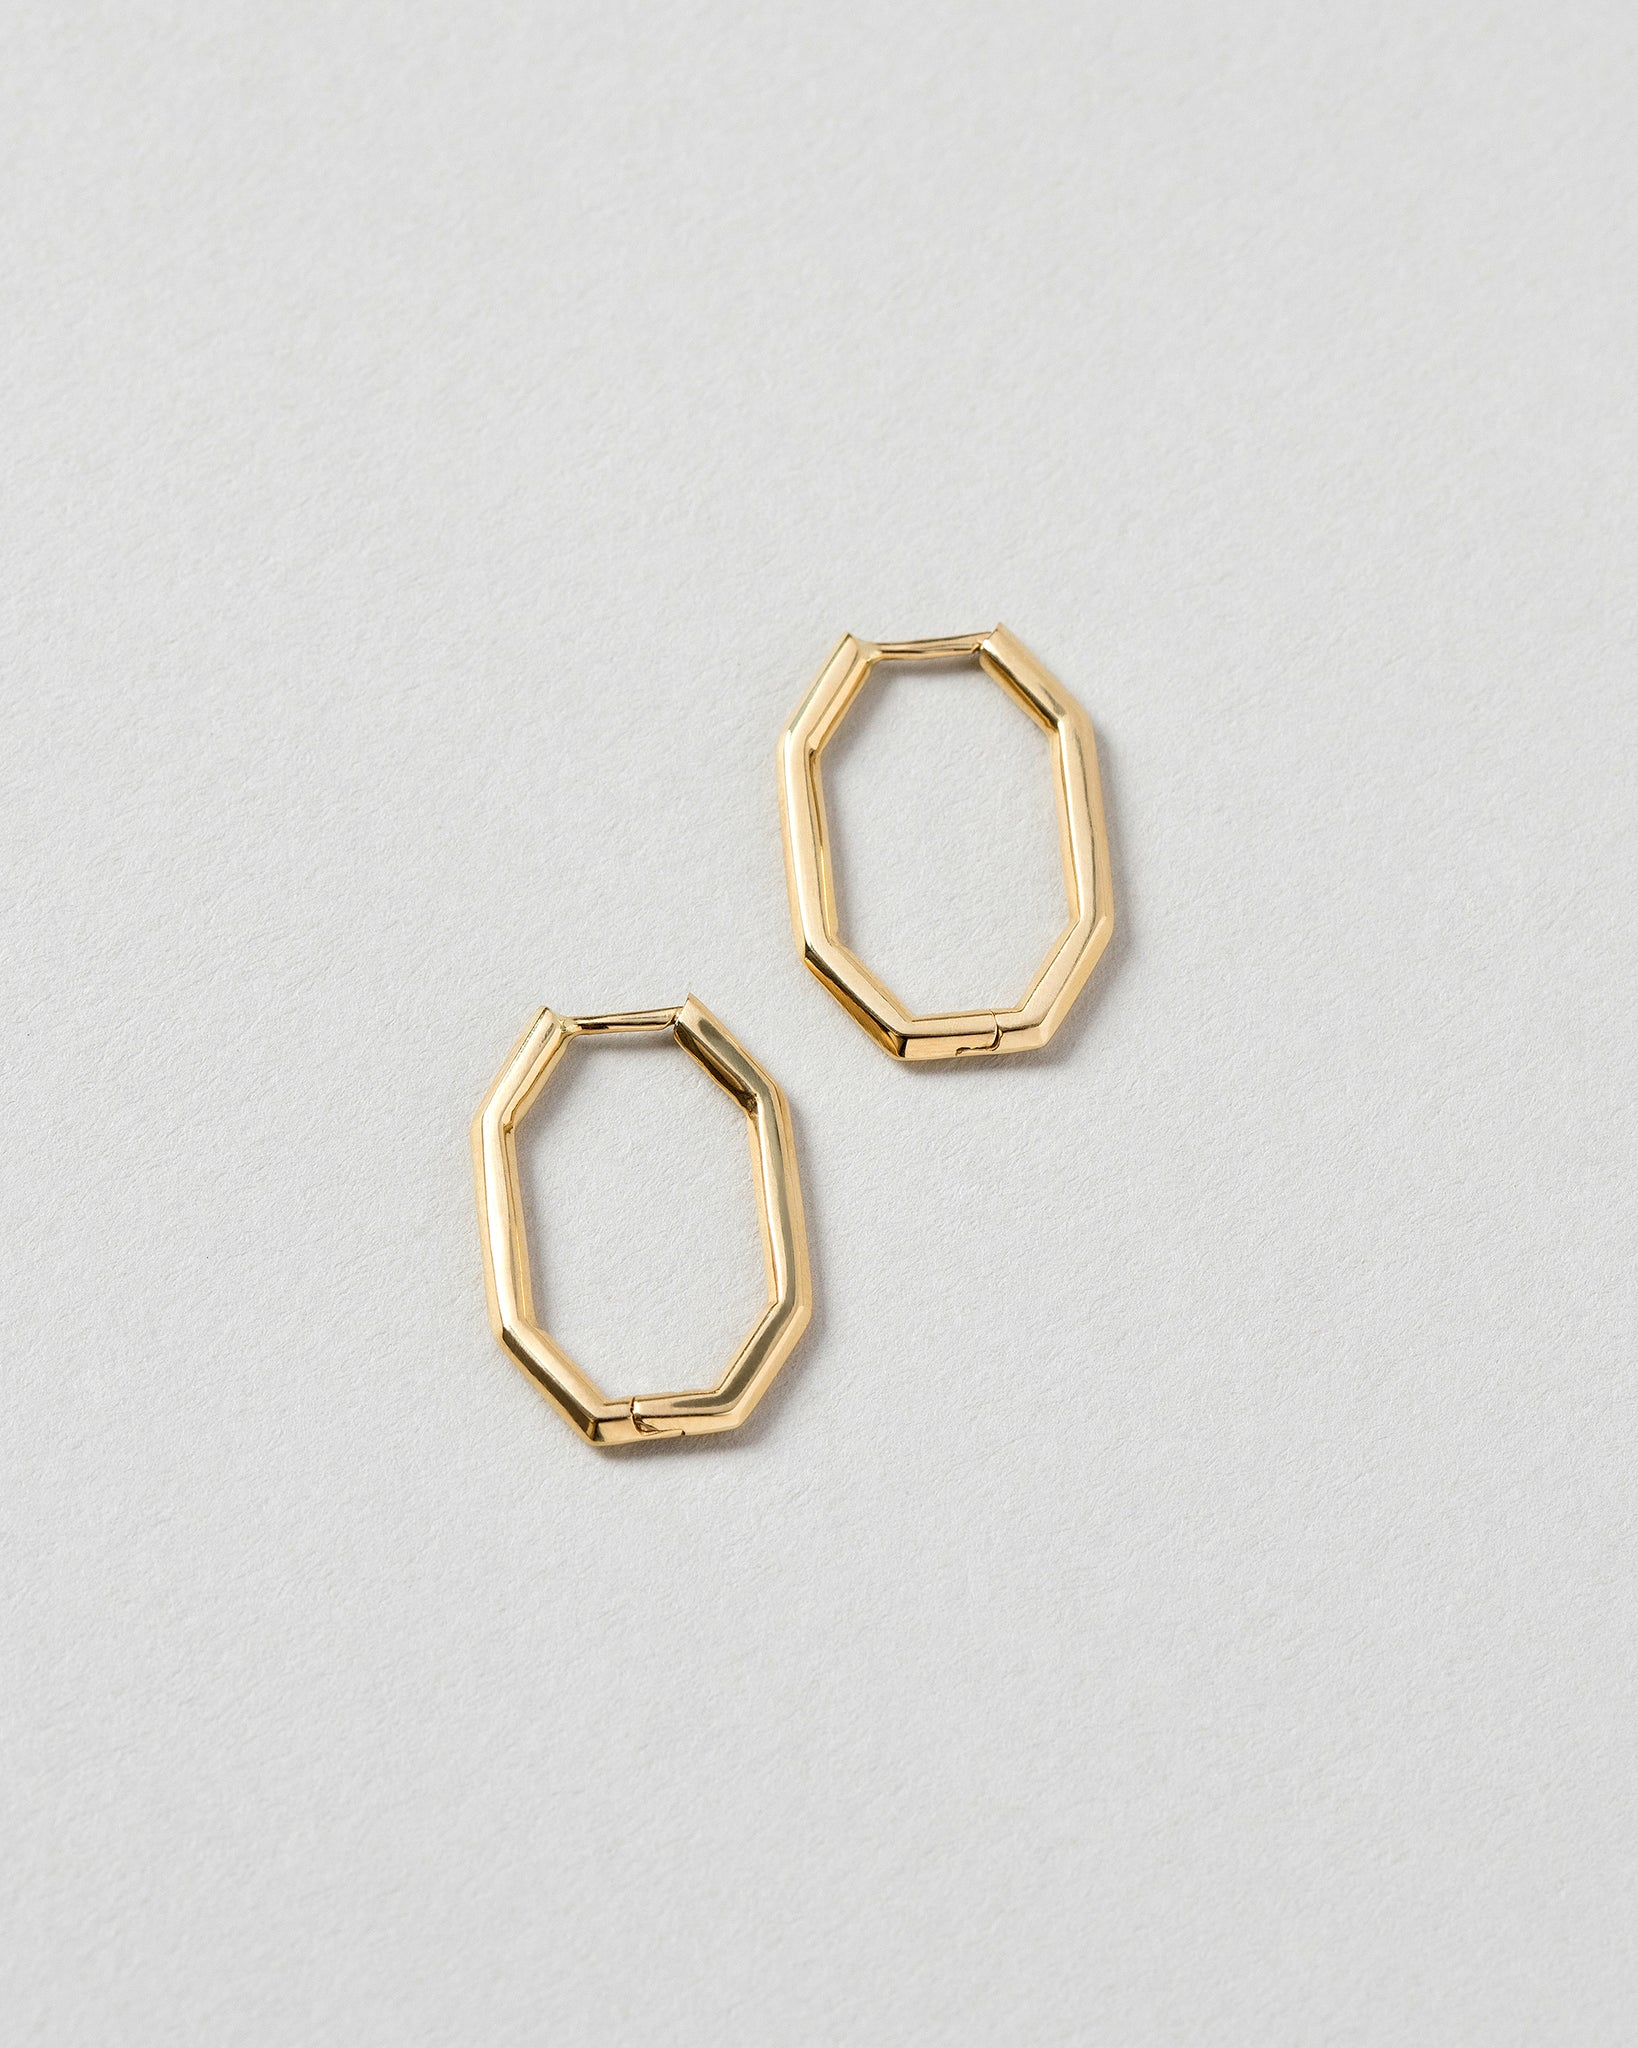 Thin Segmented Hoops Laid Flat